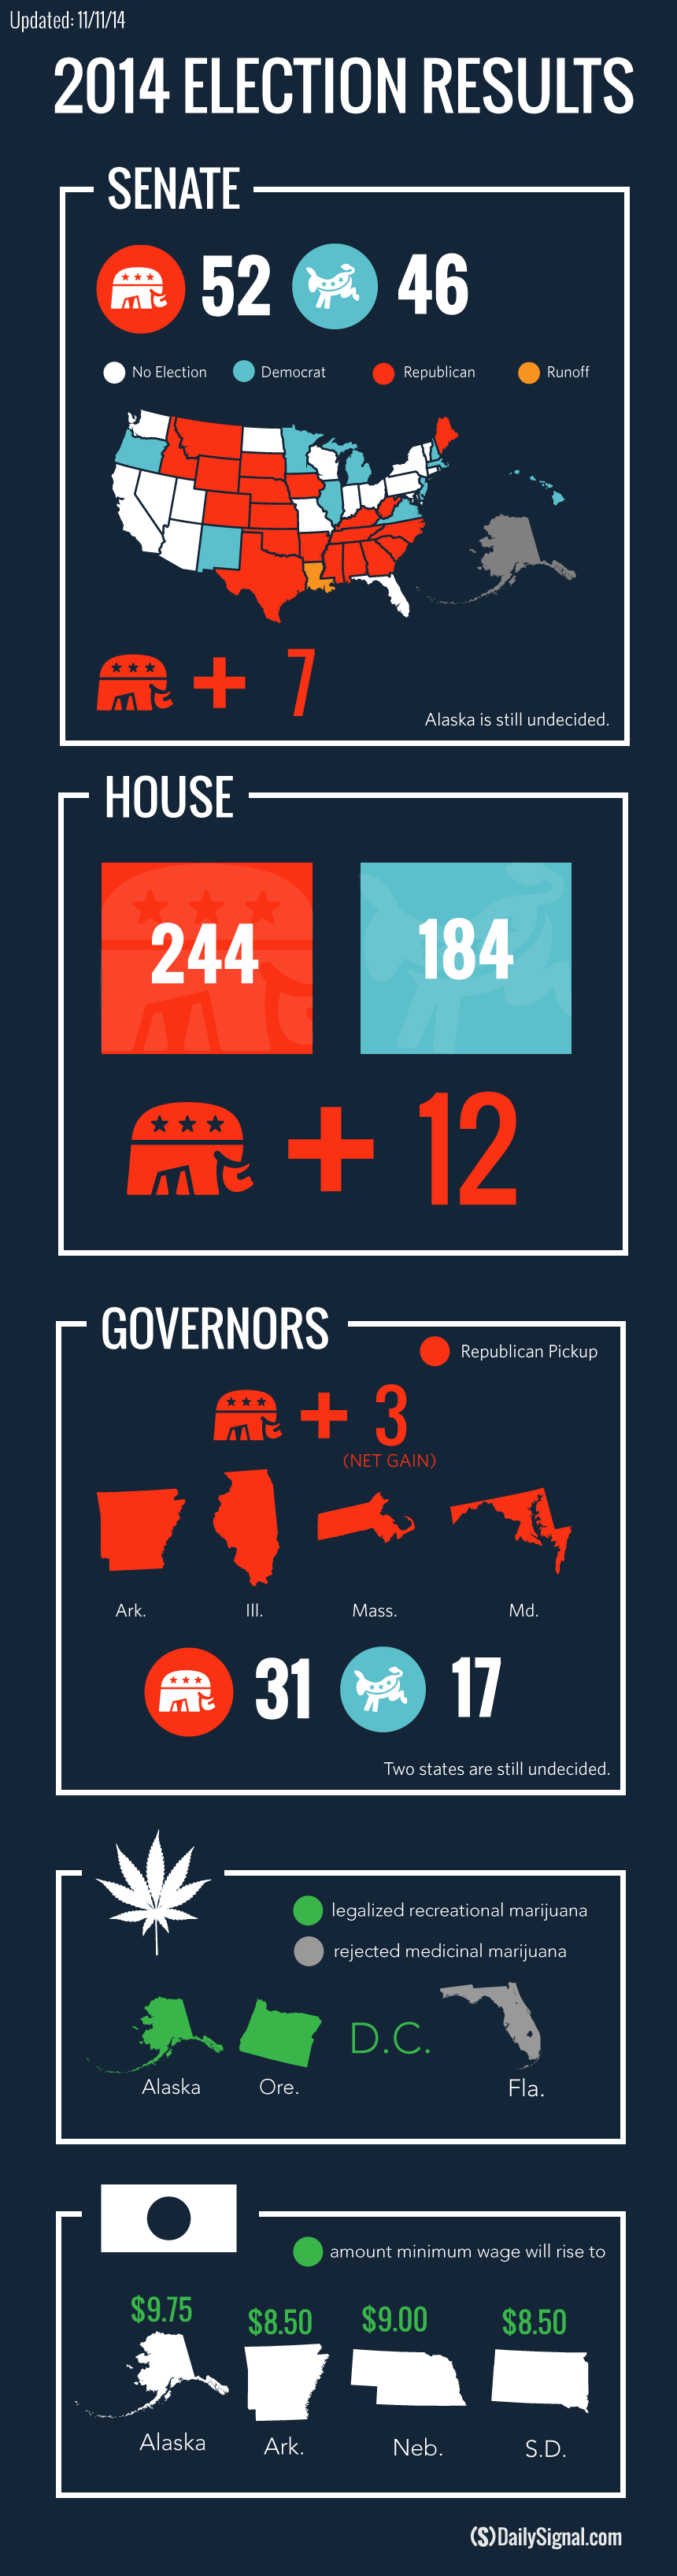 Infographic by Kelsey Harris/The Daily Signal